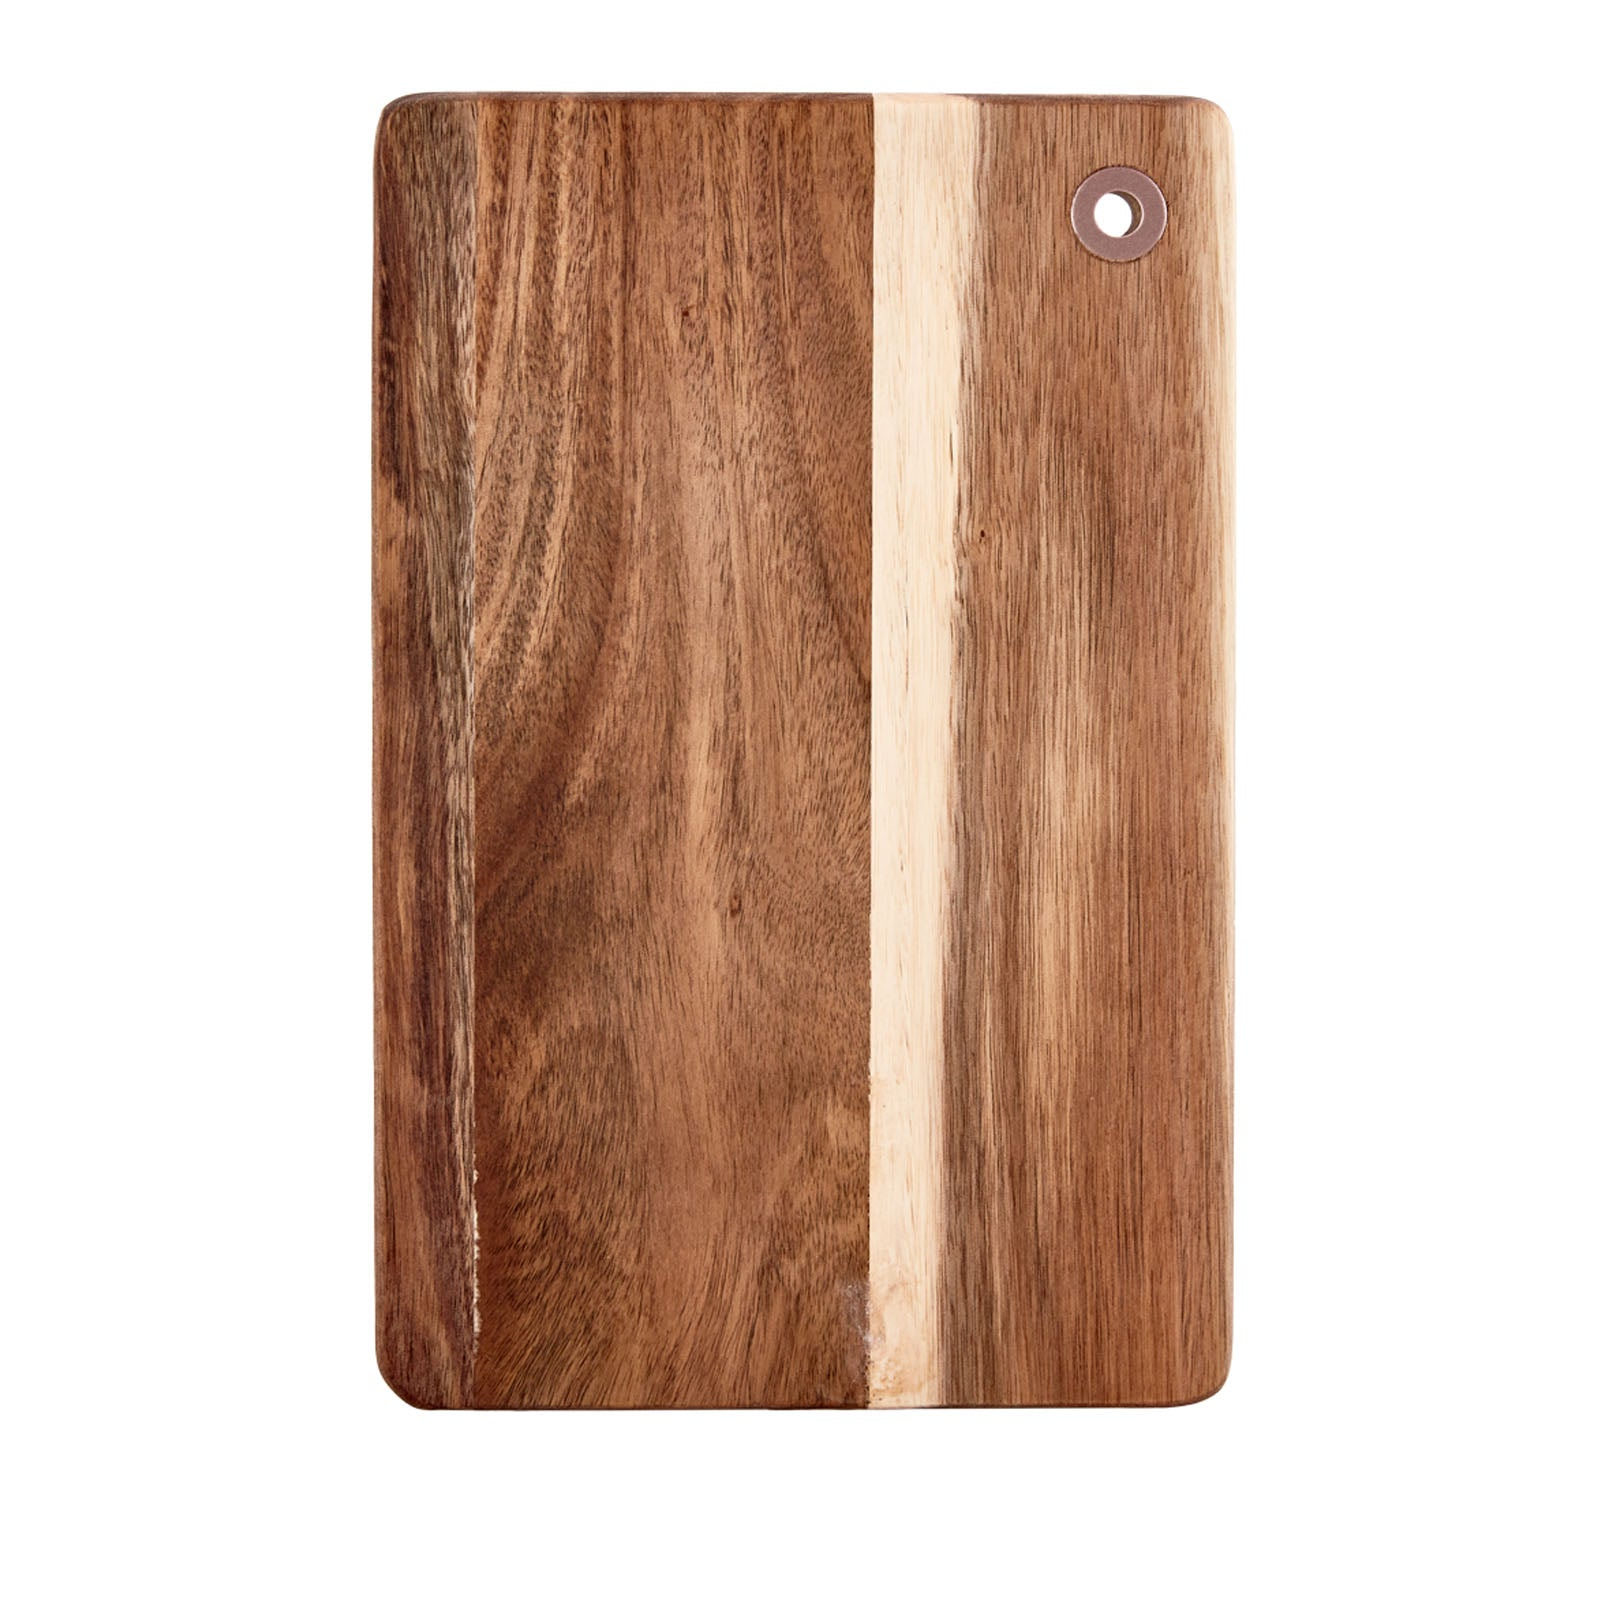 Karaca Rosegold Spring Cutting Board Small 153.03.07.4998